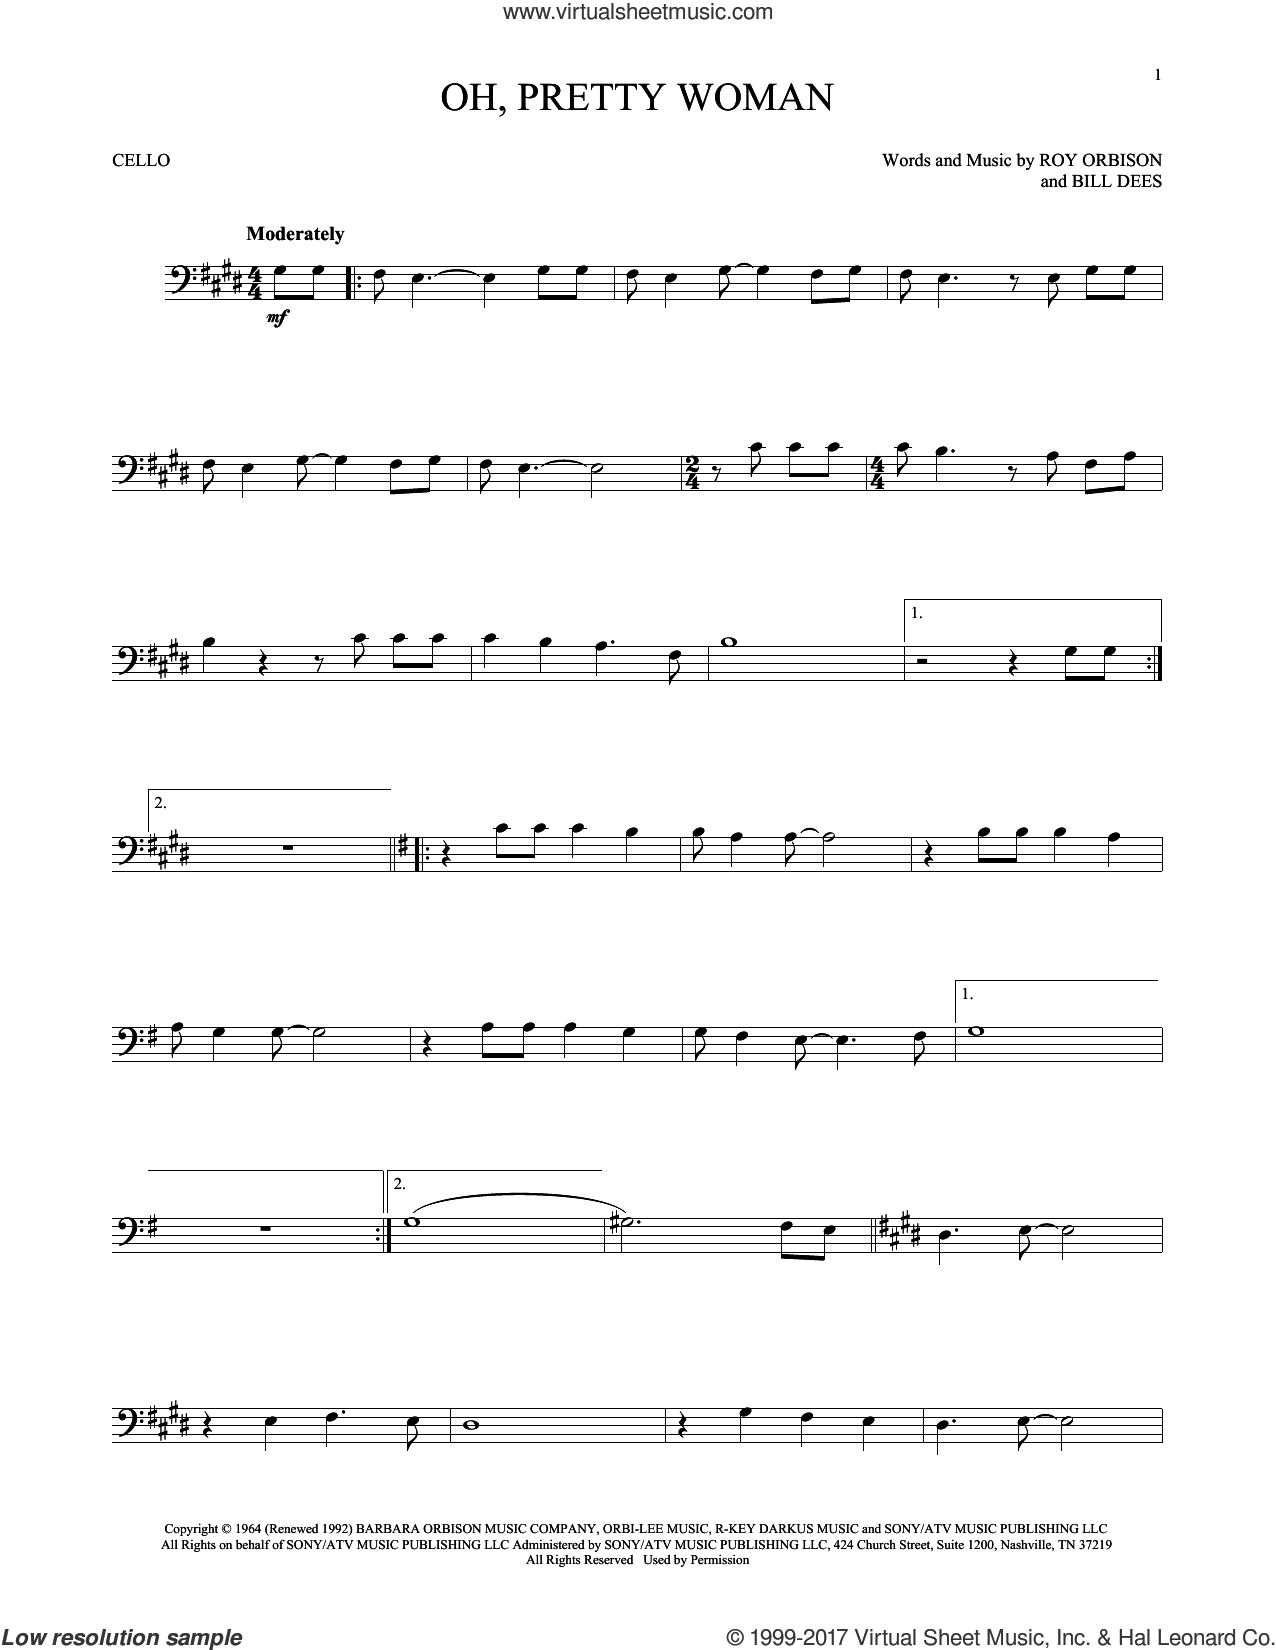 Oh, Pretty Woman sheet music for cello solo by Roy Orbison and Bill Dees, intermediate skill level